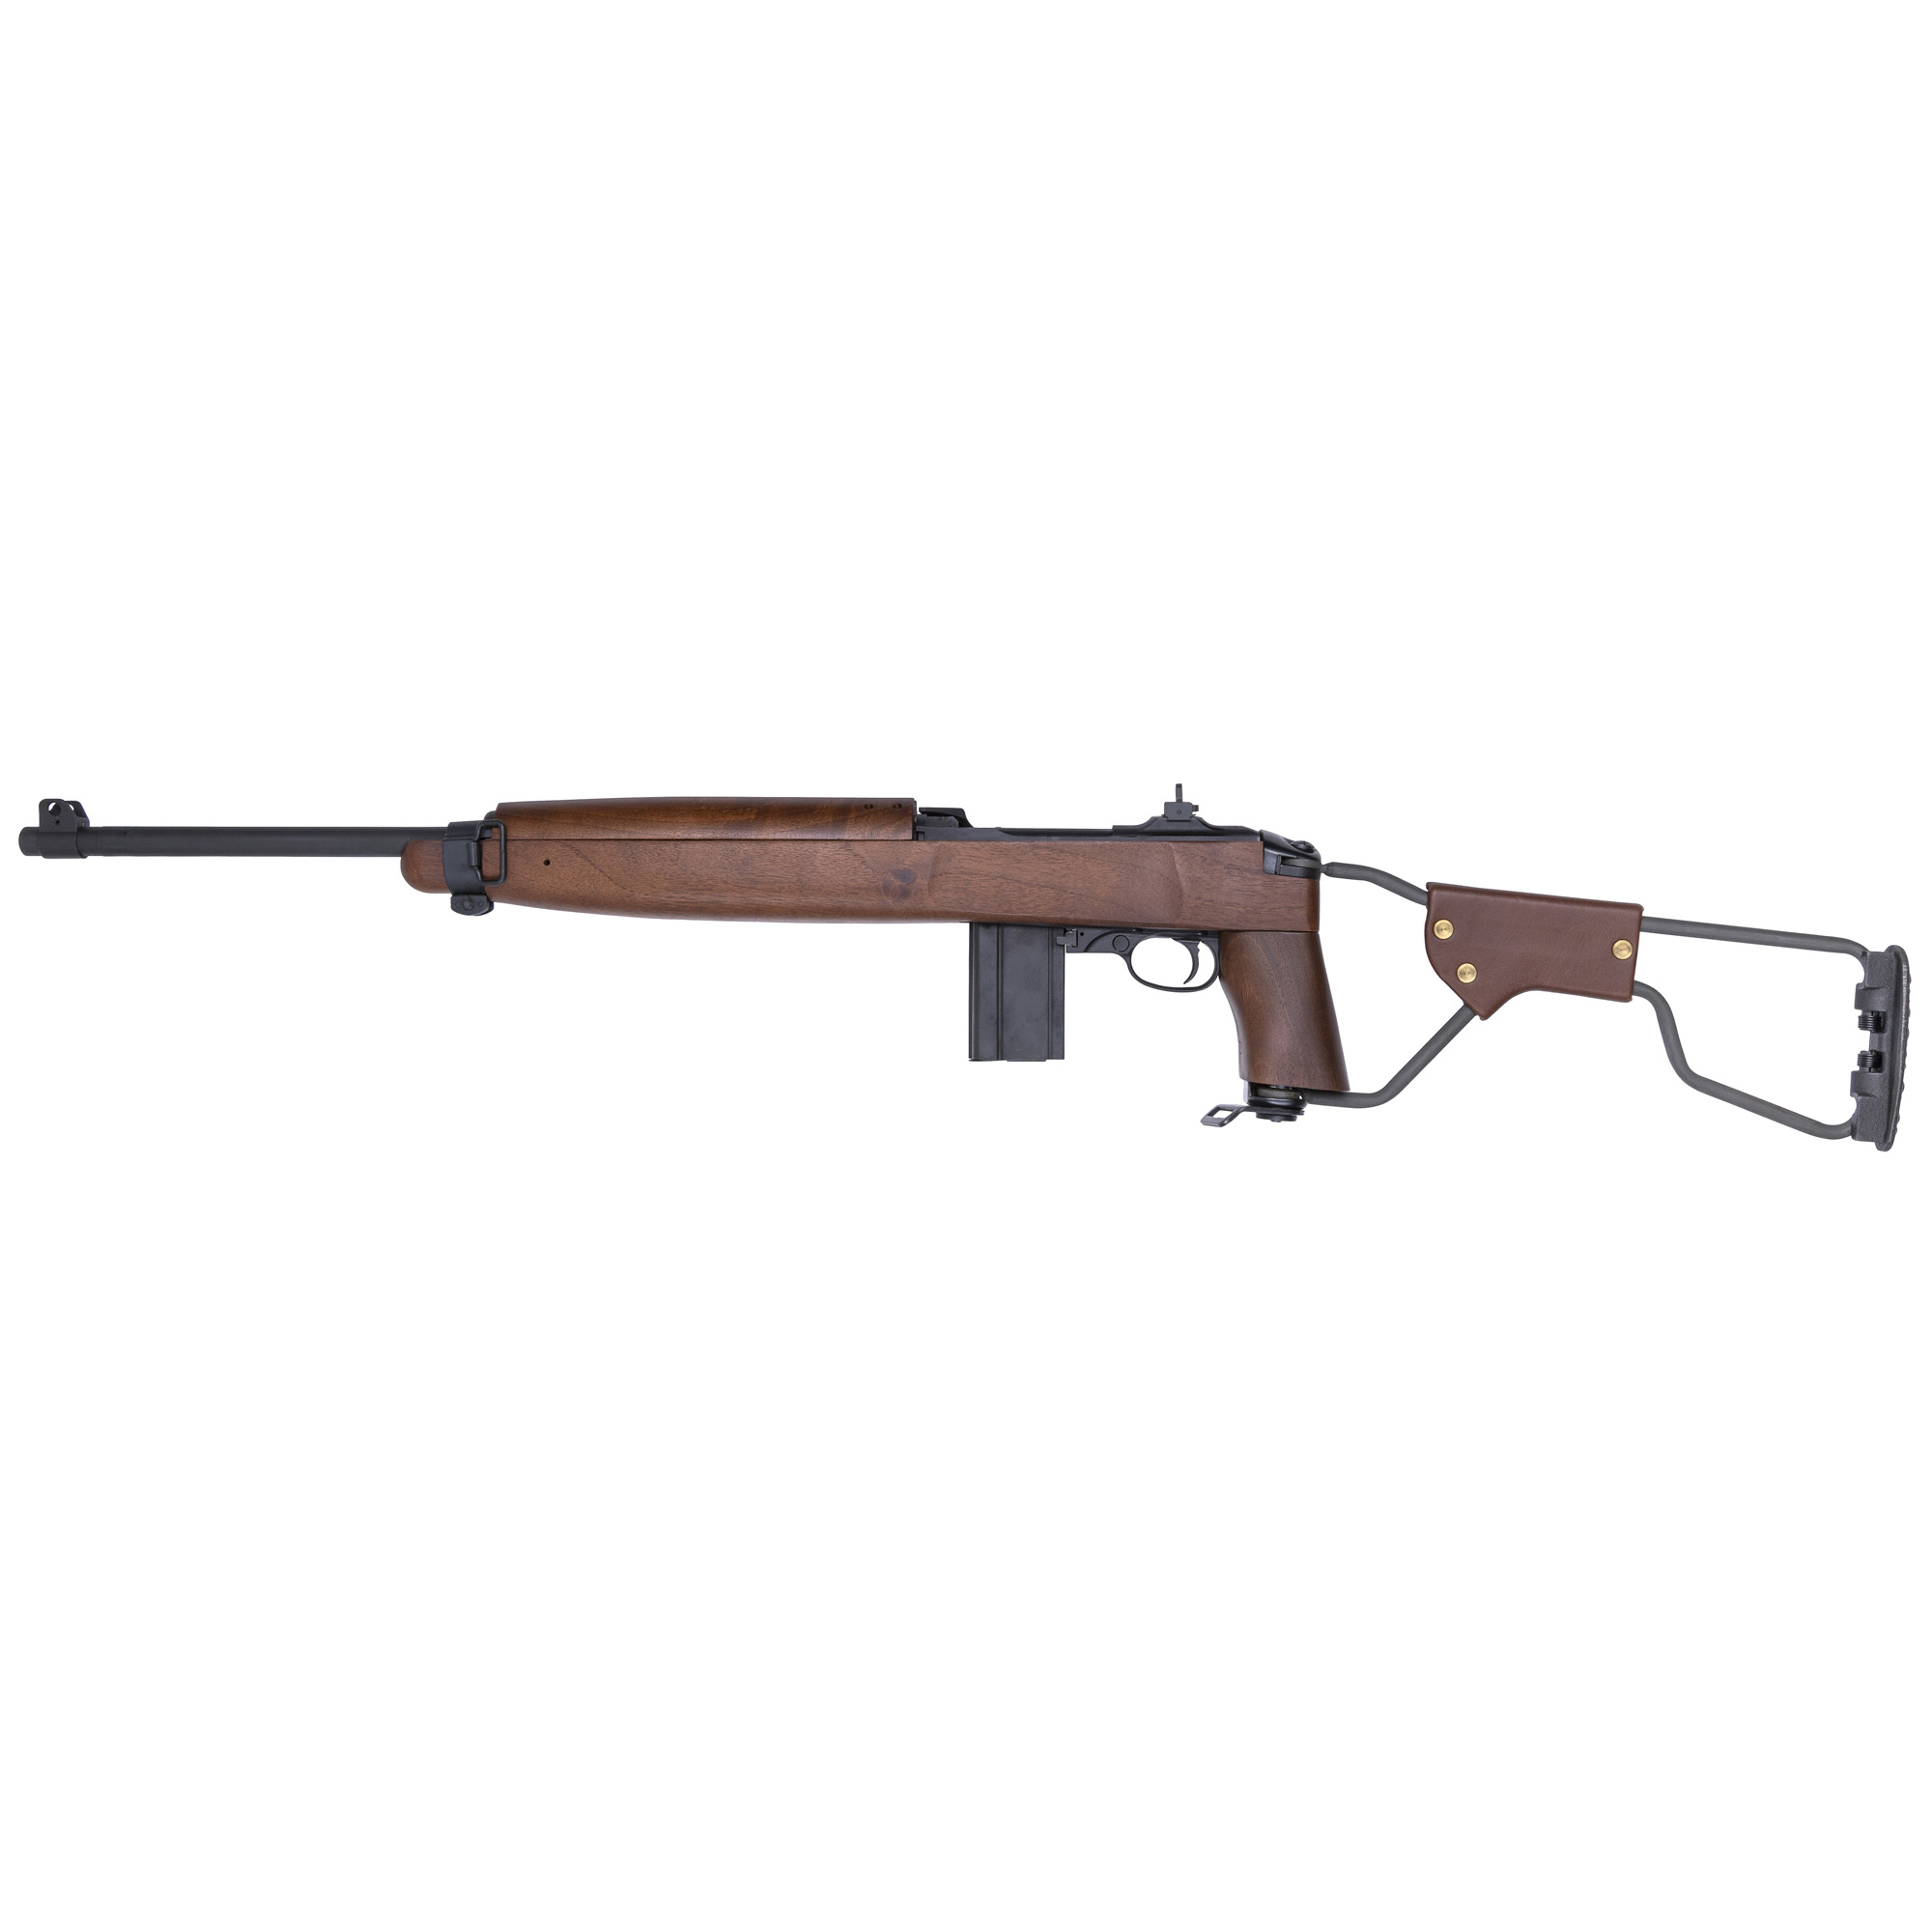 Each Auto-Ordnance M1 Carbine is a faithful reproduction of the famous military rifles that served American forces beginning in World War II.